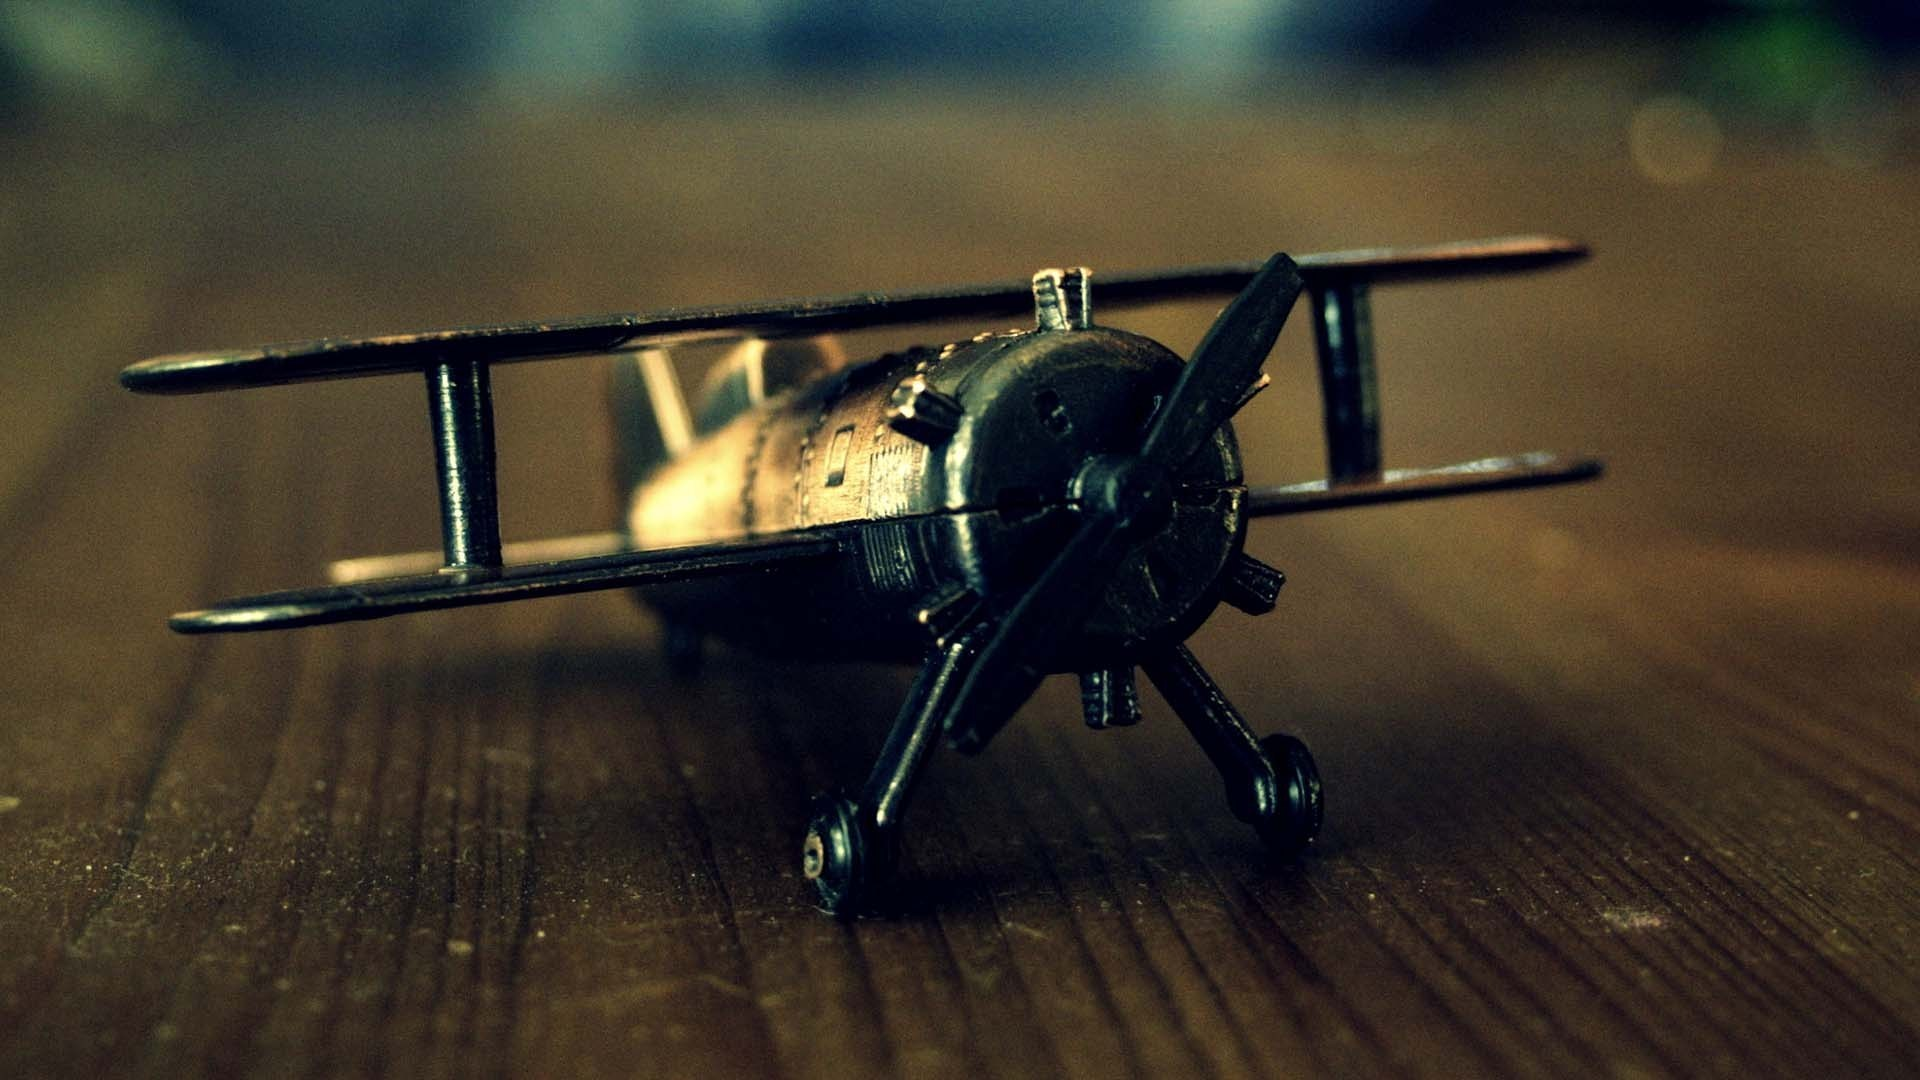 Airplane model toy mood hd wallpaper